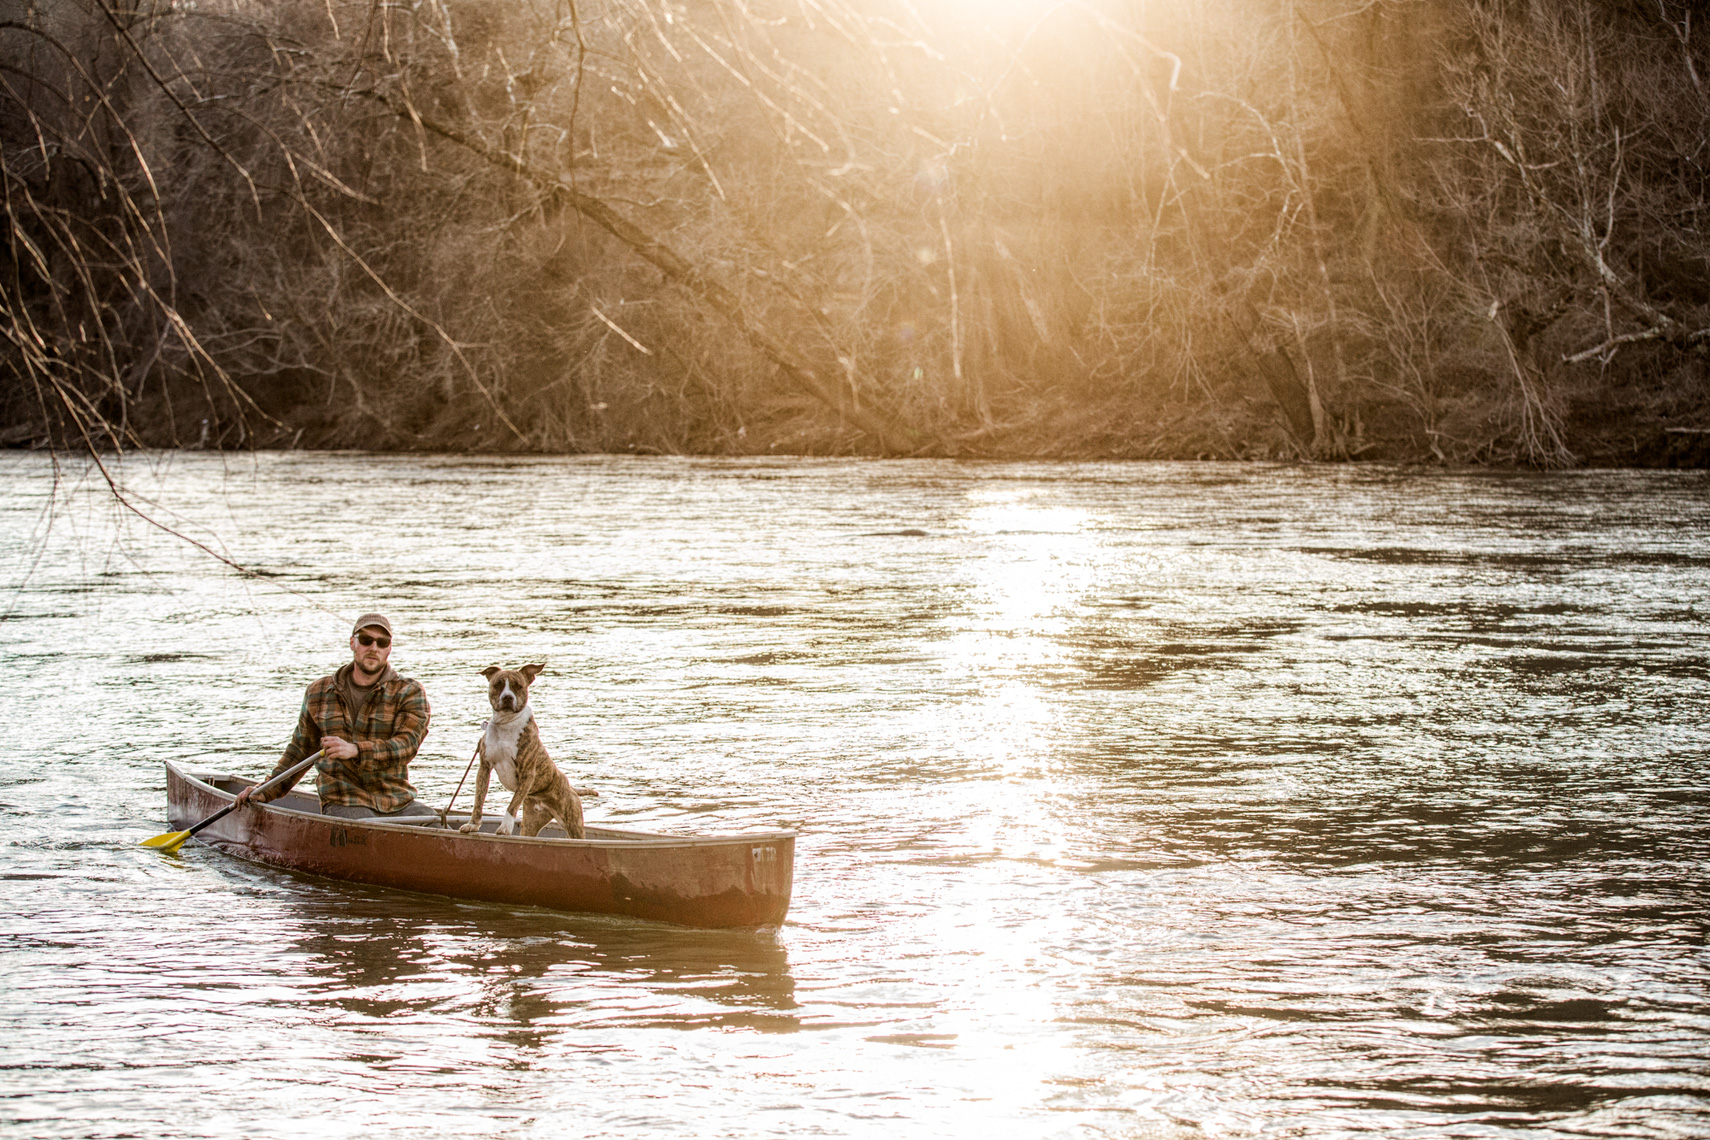 Los Angeles Dog Photography, Michael Brian, Pit Bull in canoe, Purina ONE, Zeus Jones, 28 Day Challenge, Bywater, Asheville, North Carolina